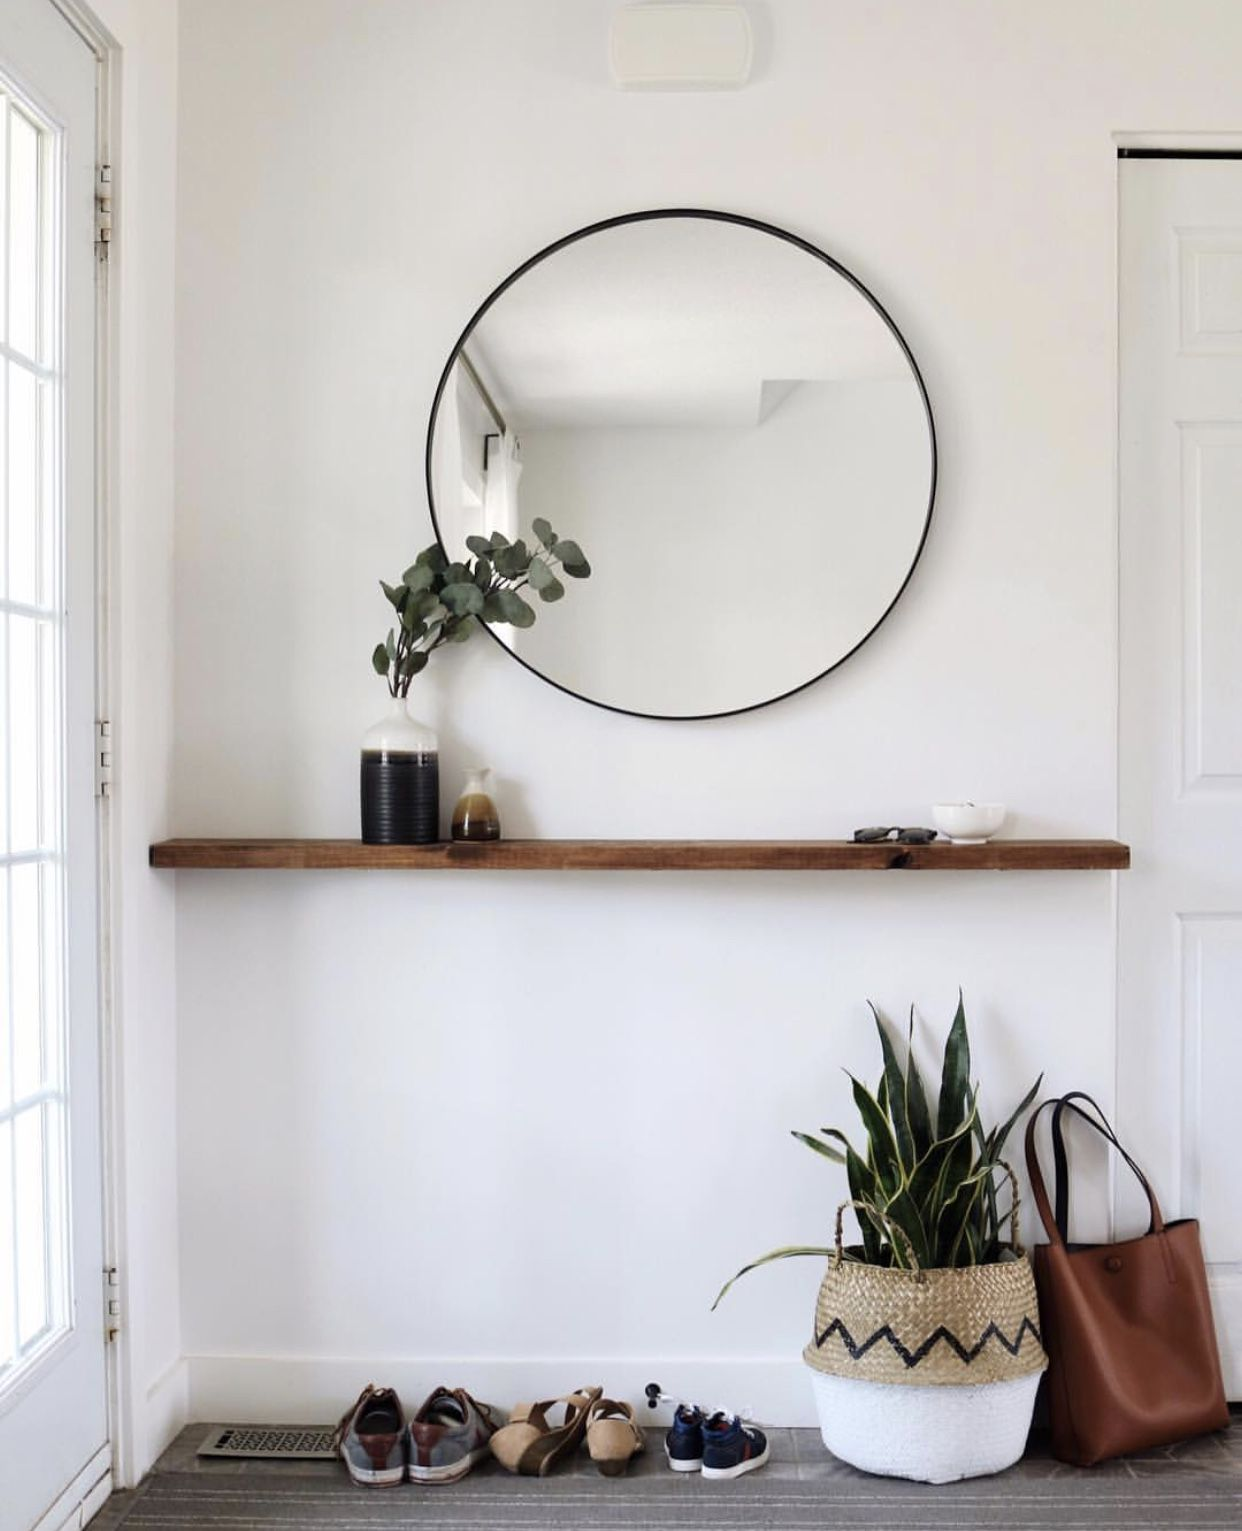 This Simple Entryway Has A Level Of Elegance With The Circular Mirror The Floating Shelf Is A Great Spot To Shelf Decor Bedroom Small Entryways Entryway Decor